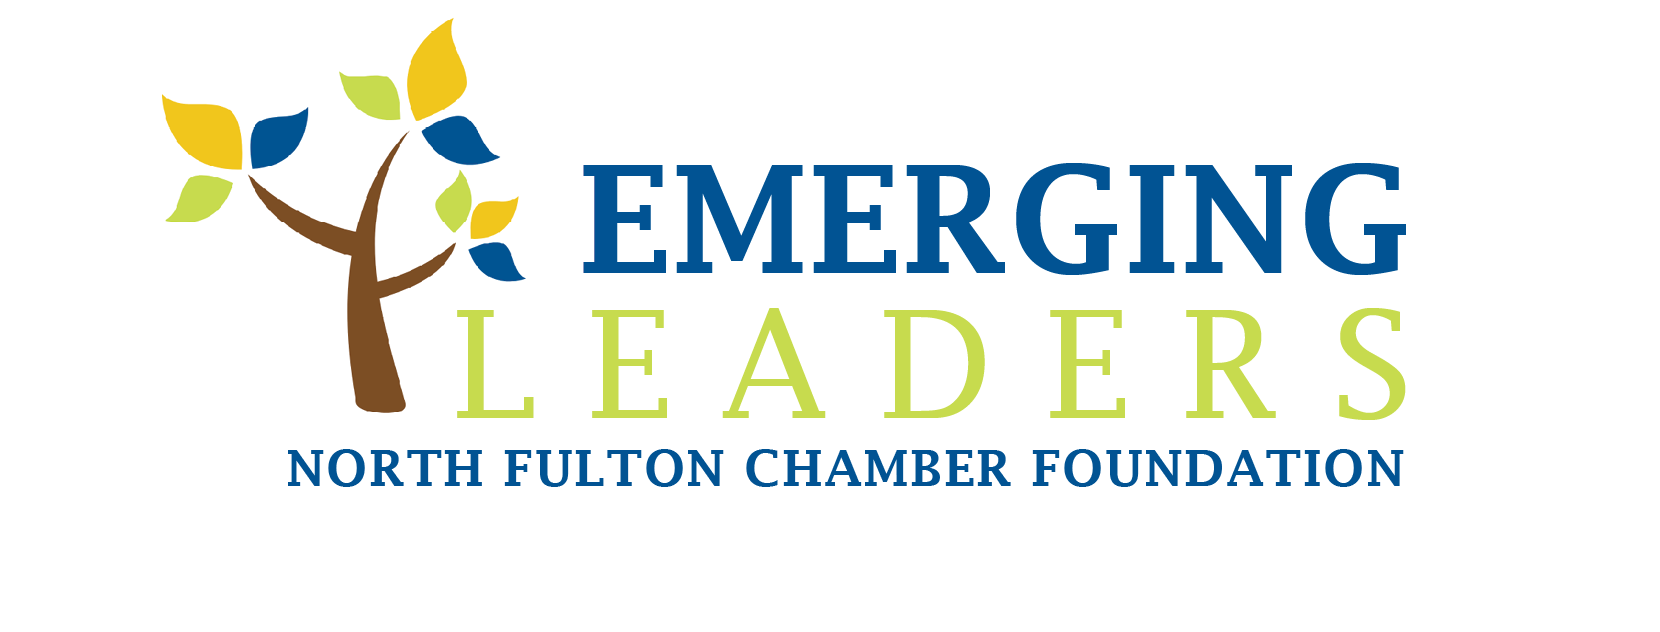 emerging leaders logo linear refreshed.png